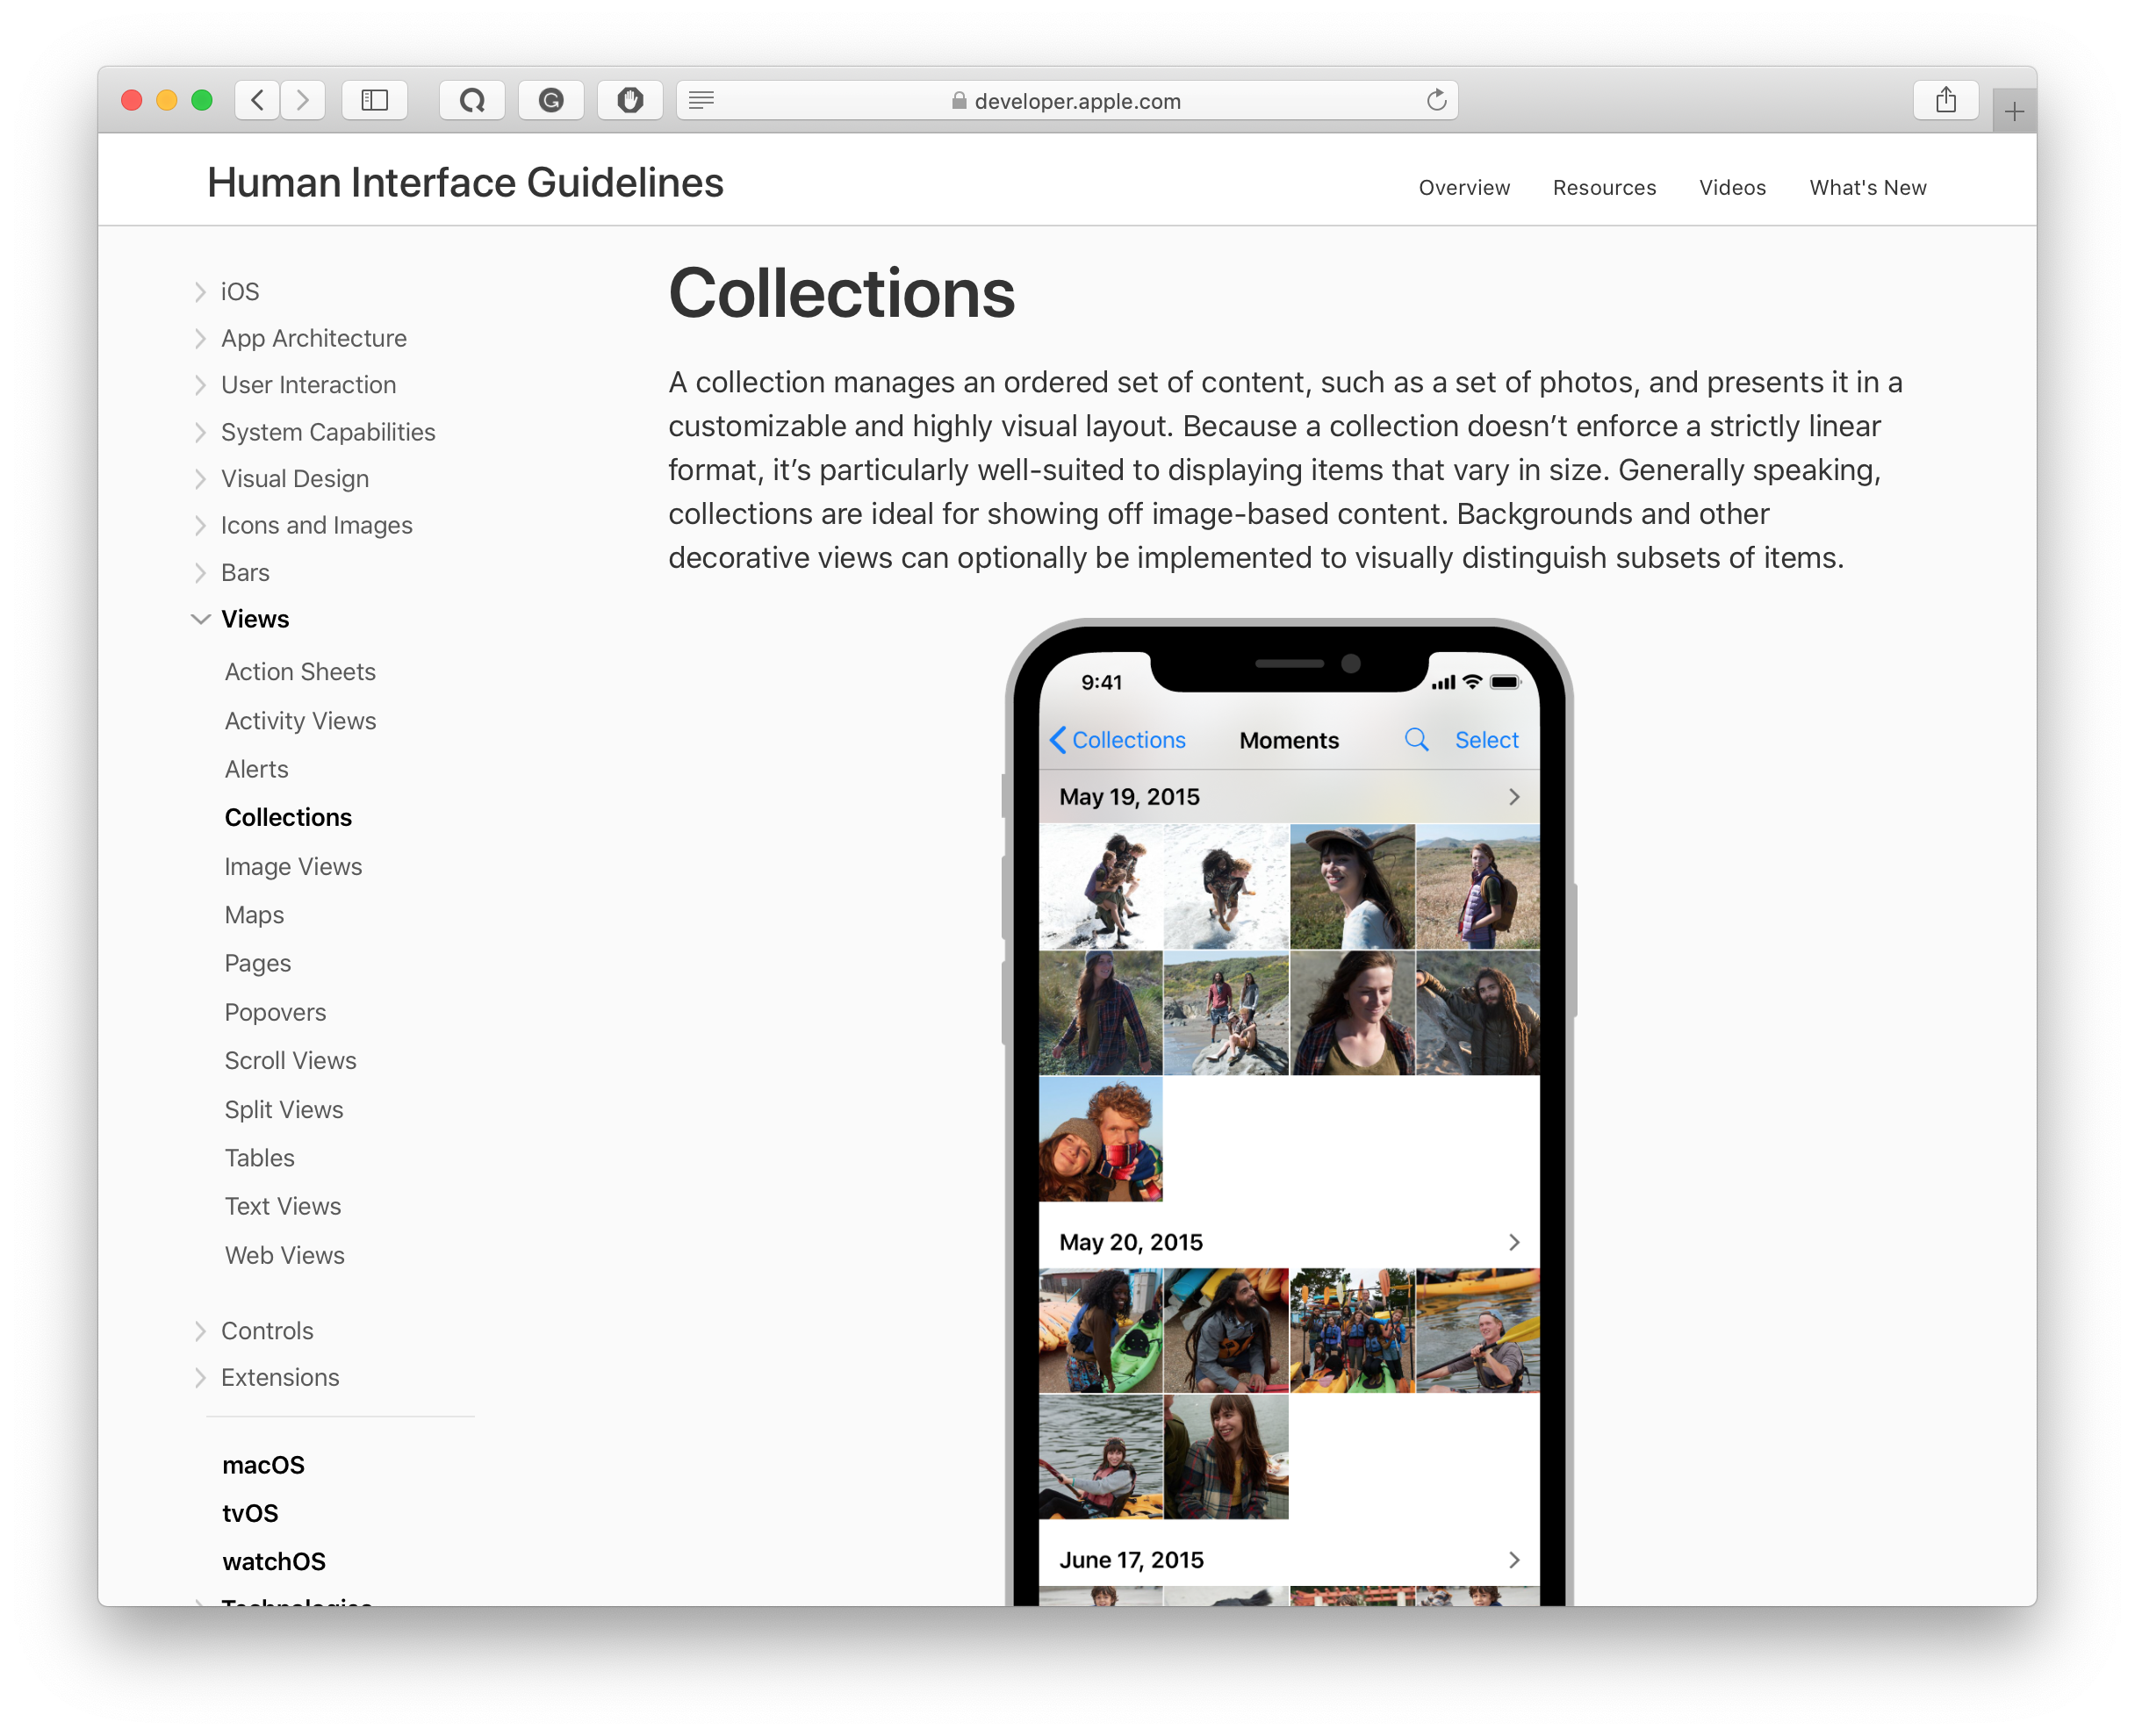 collection views in apple's human interface guidelines